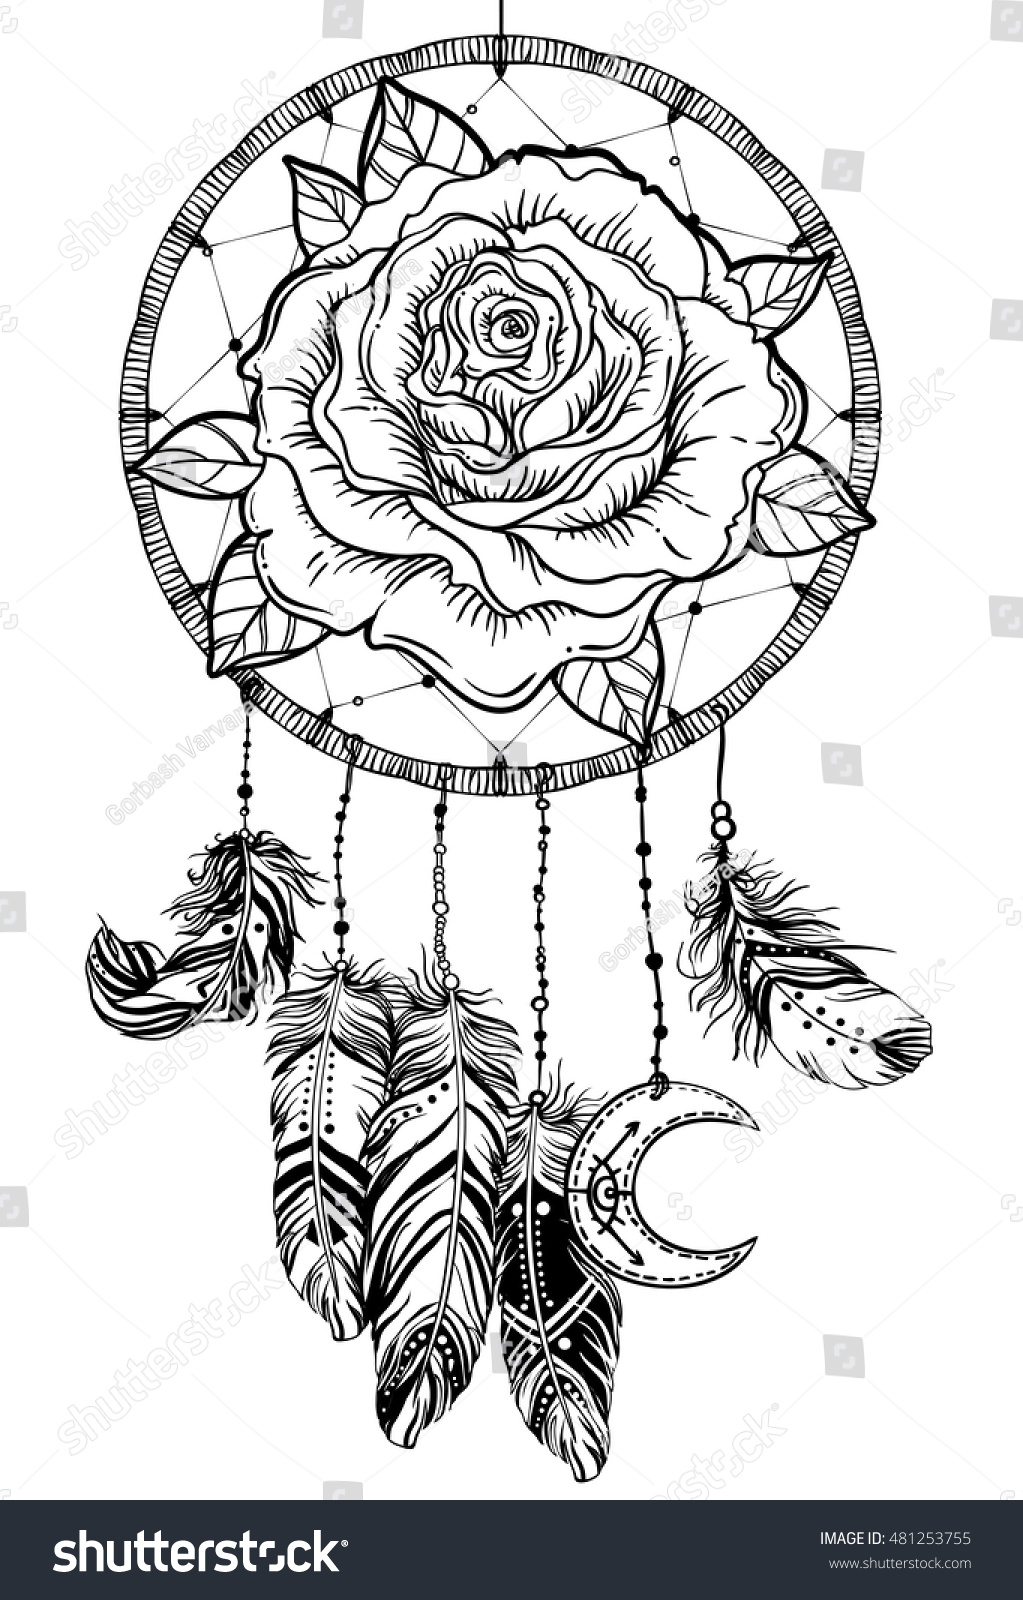 detailed dream catcher coloring pages - photo#12